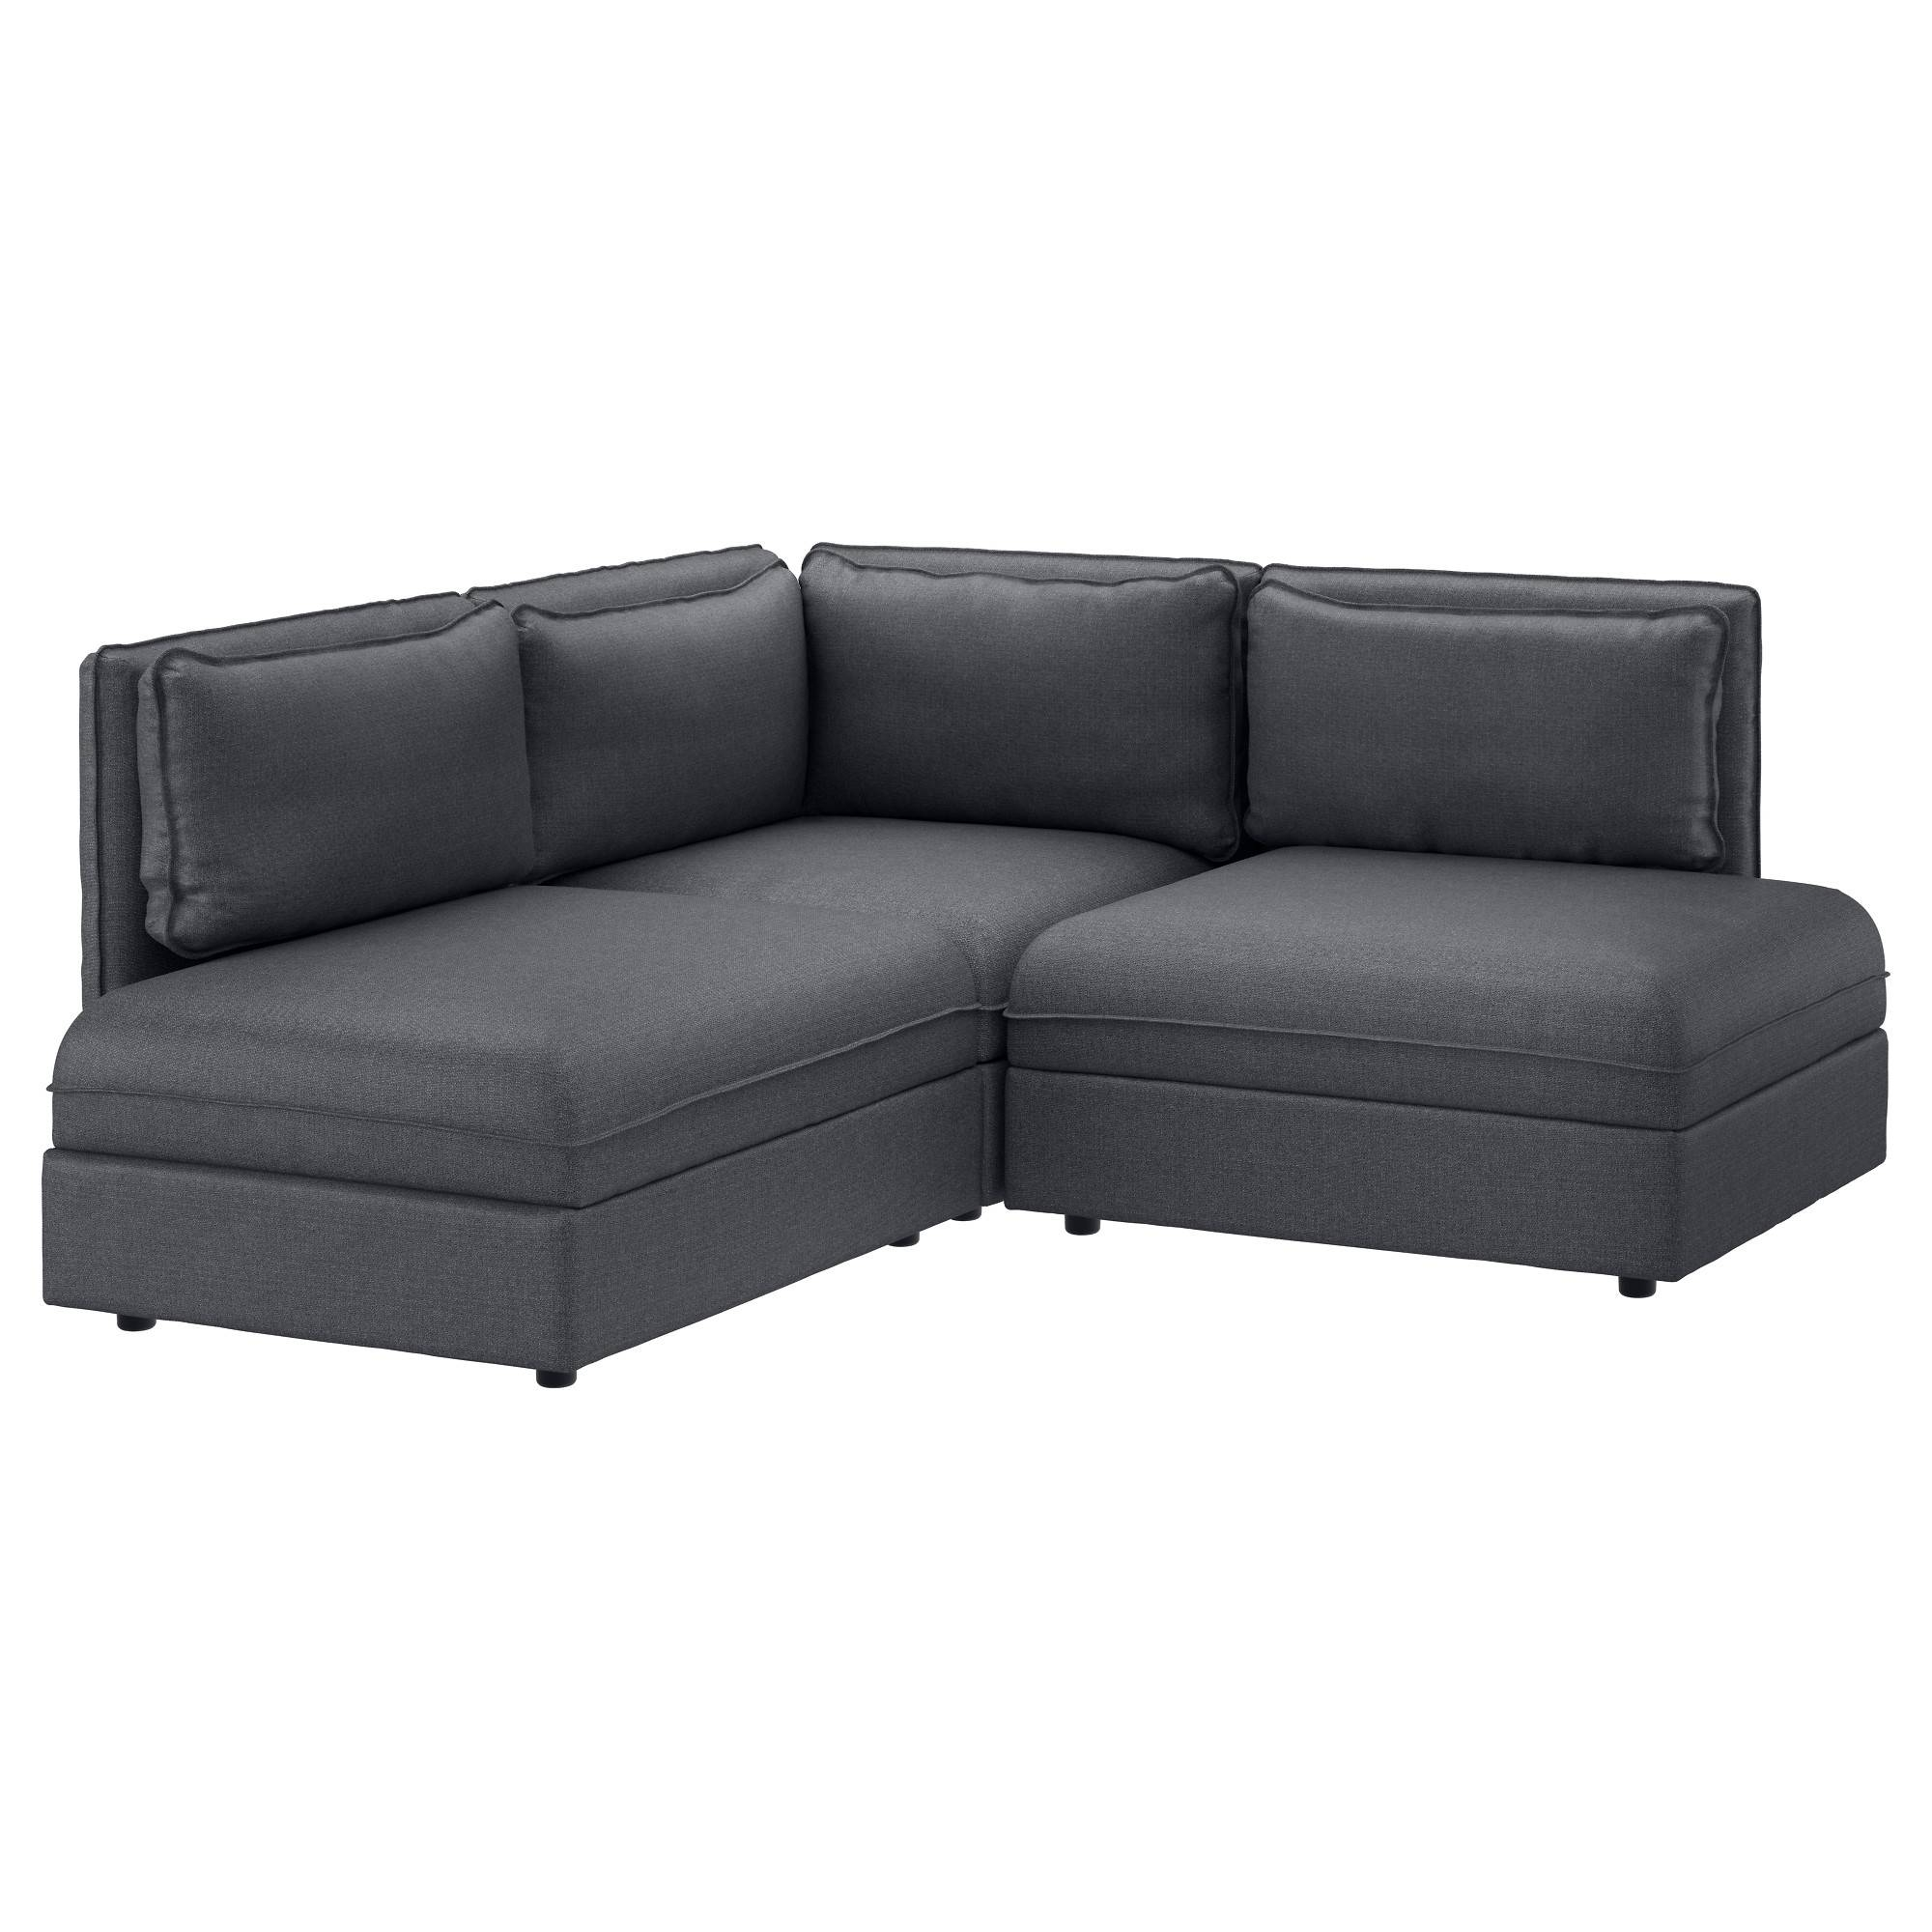 Sofas Center : 37 Unusual Ikea Corner Sofa Photos Design Ikea for Unusual Sofa (Image 3 of 23)